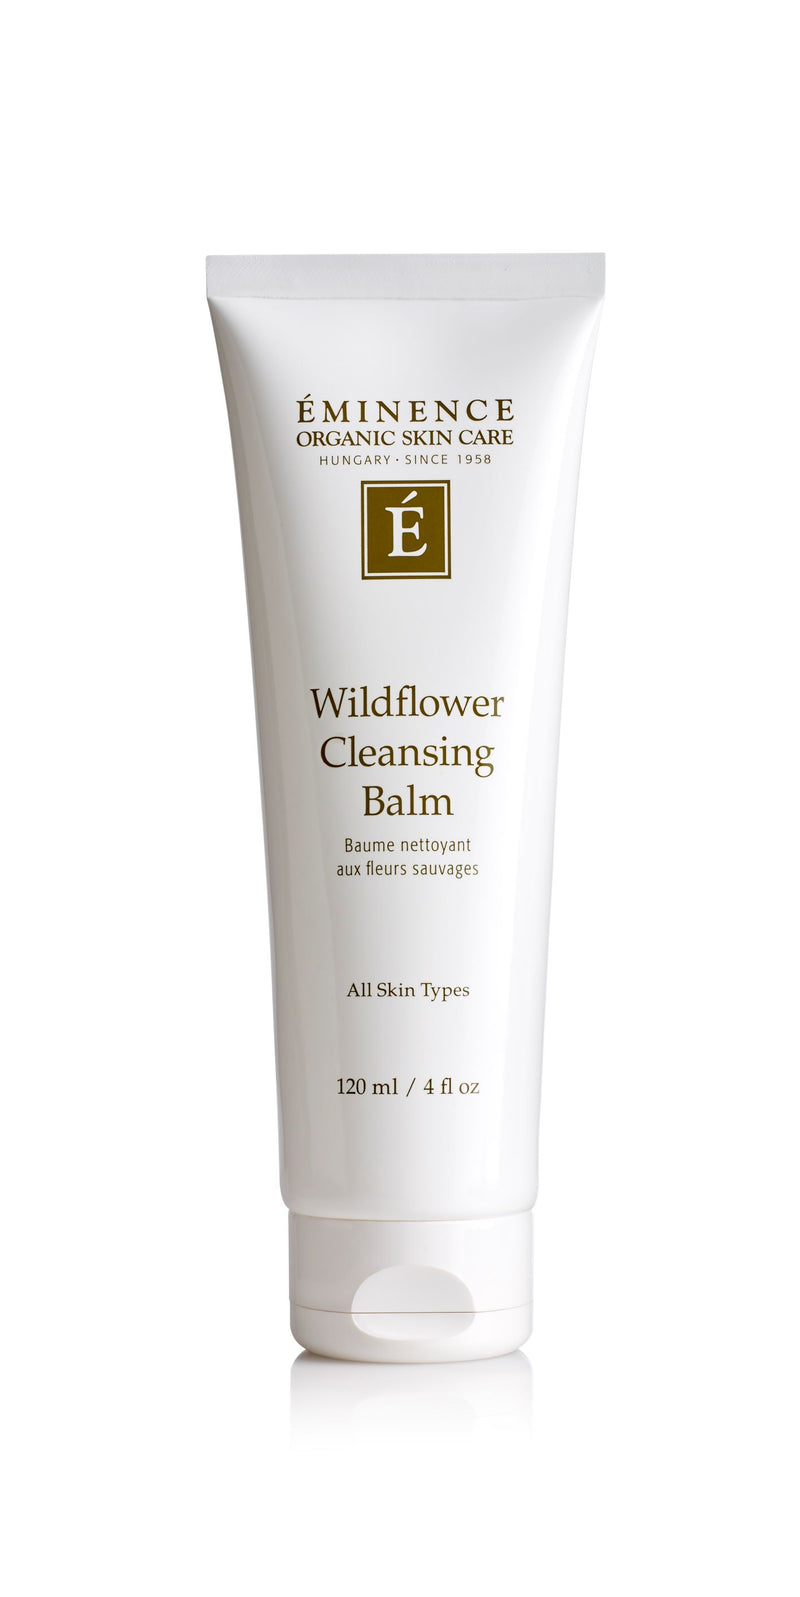 Wildflower Cleansing Balm